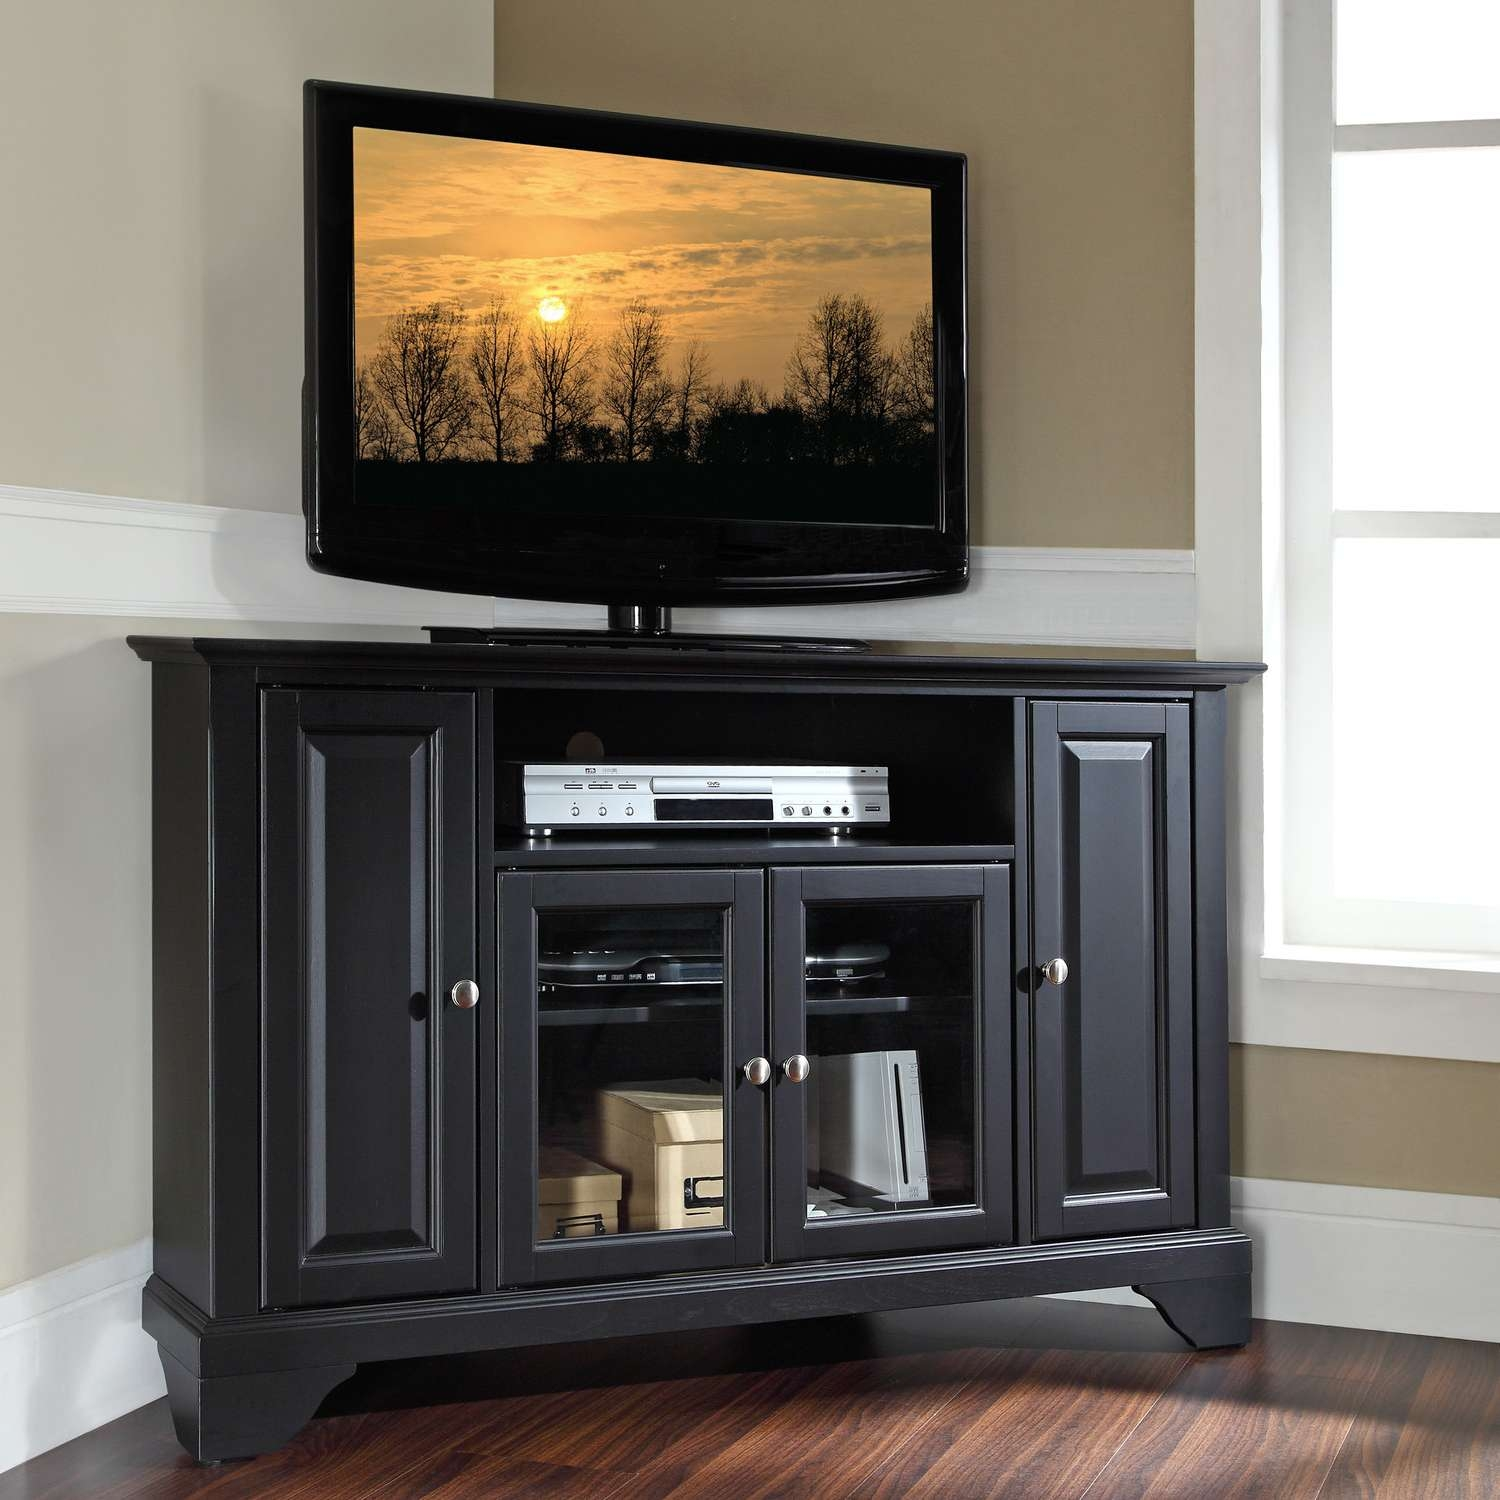 Furnitures Triangle Tv Stand Corner With Mount Black Lacquer Glass Pertaining To Solid Wood Black Tv Stands (View 6 of 15)